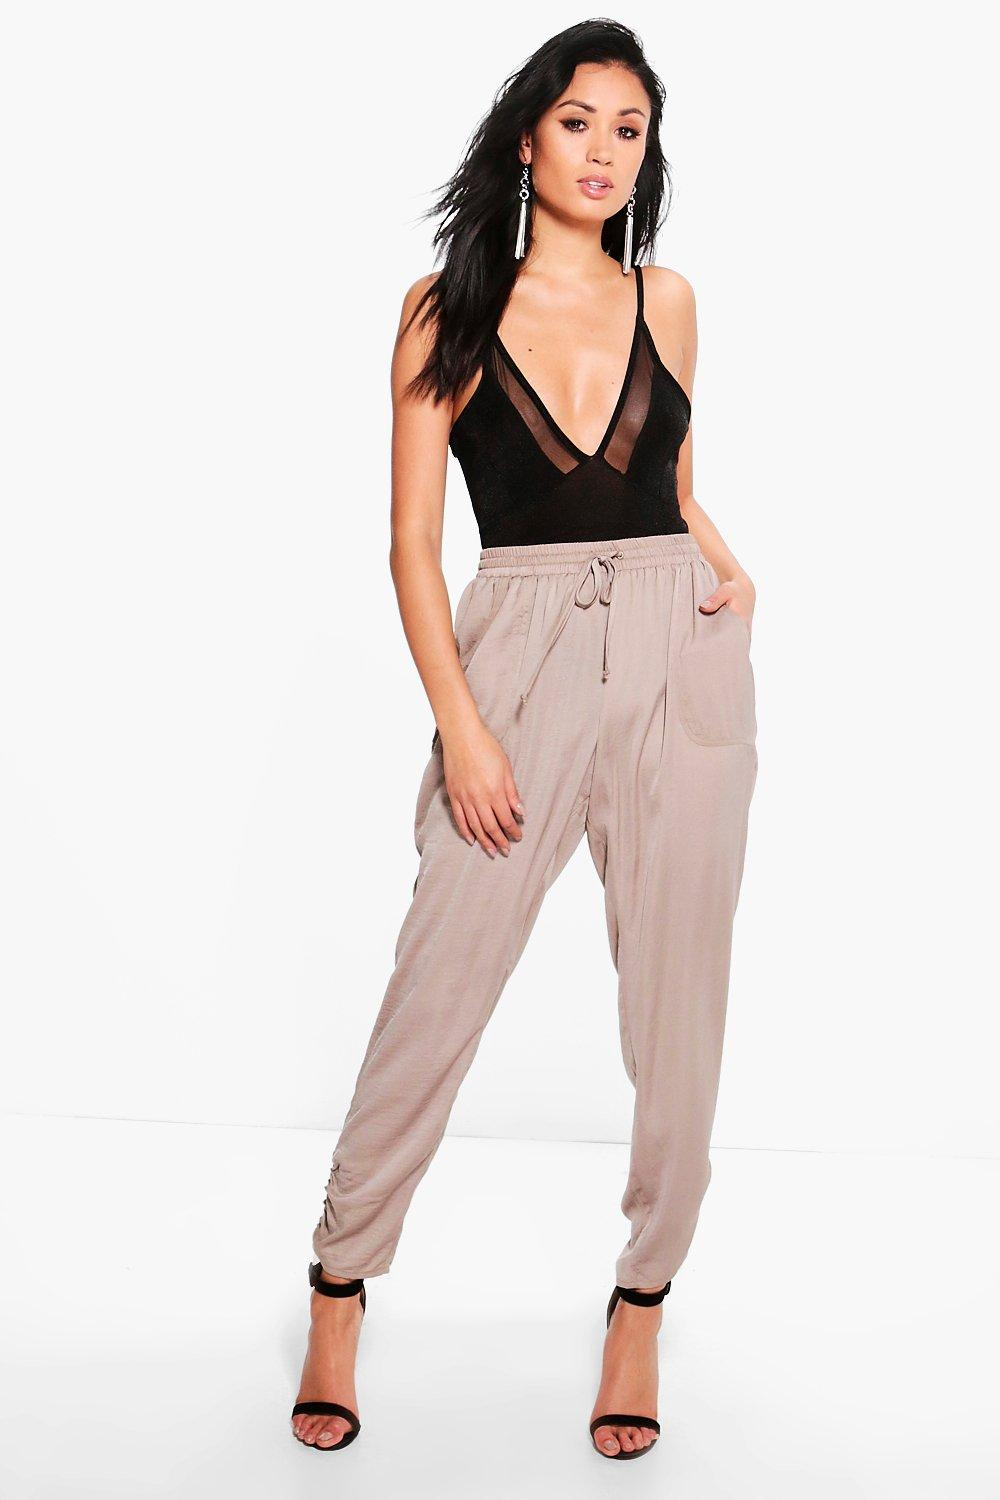 Luxe Rouched Ankle Joggers - taupe